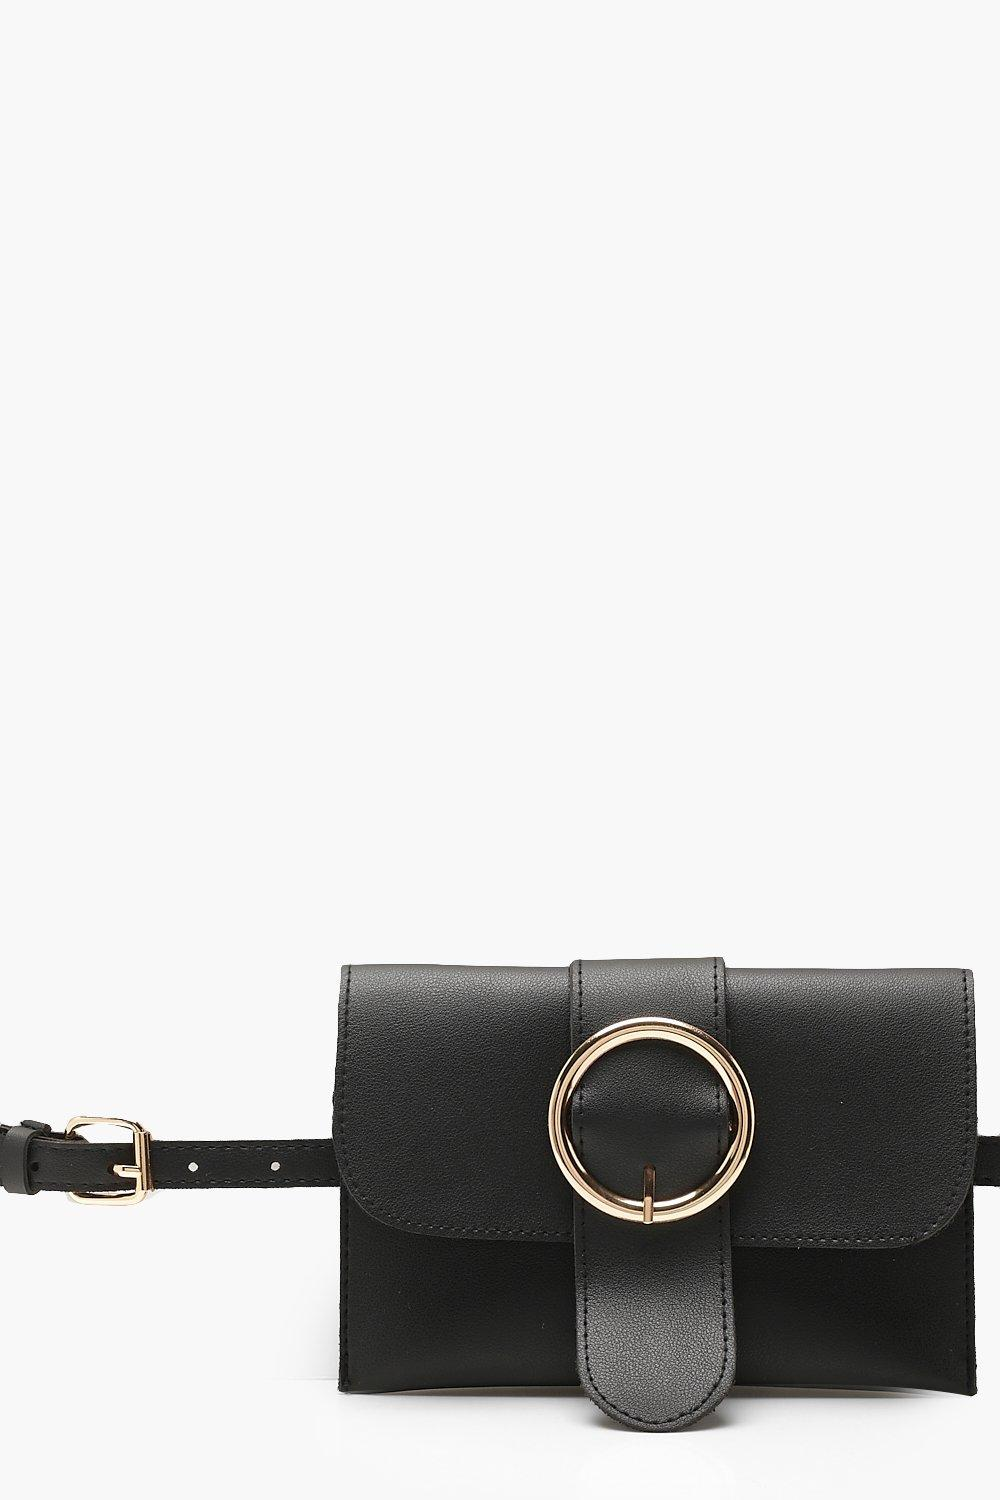 boohoo Womens Circle Buckle Belt Bag - Black - One Size, Black